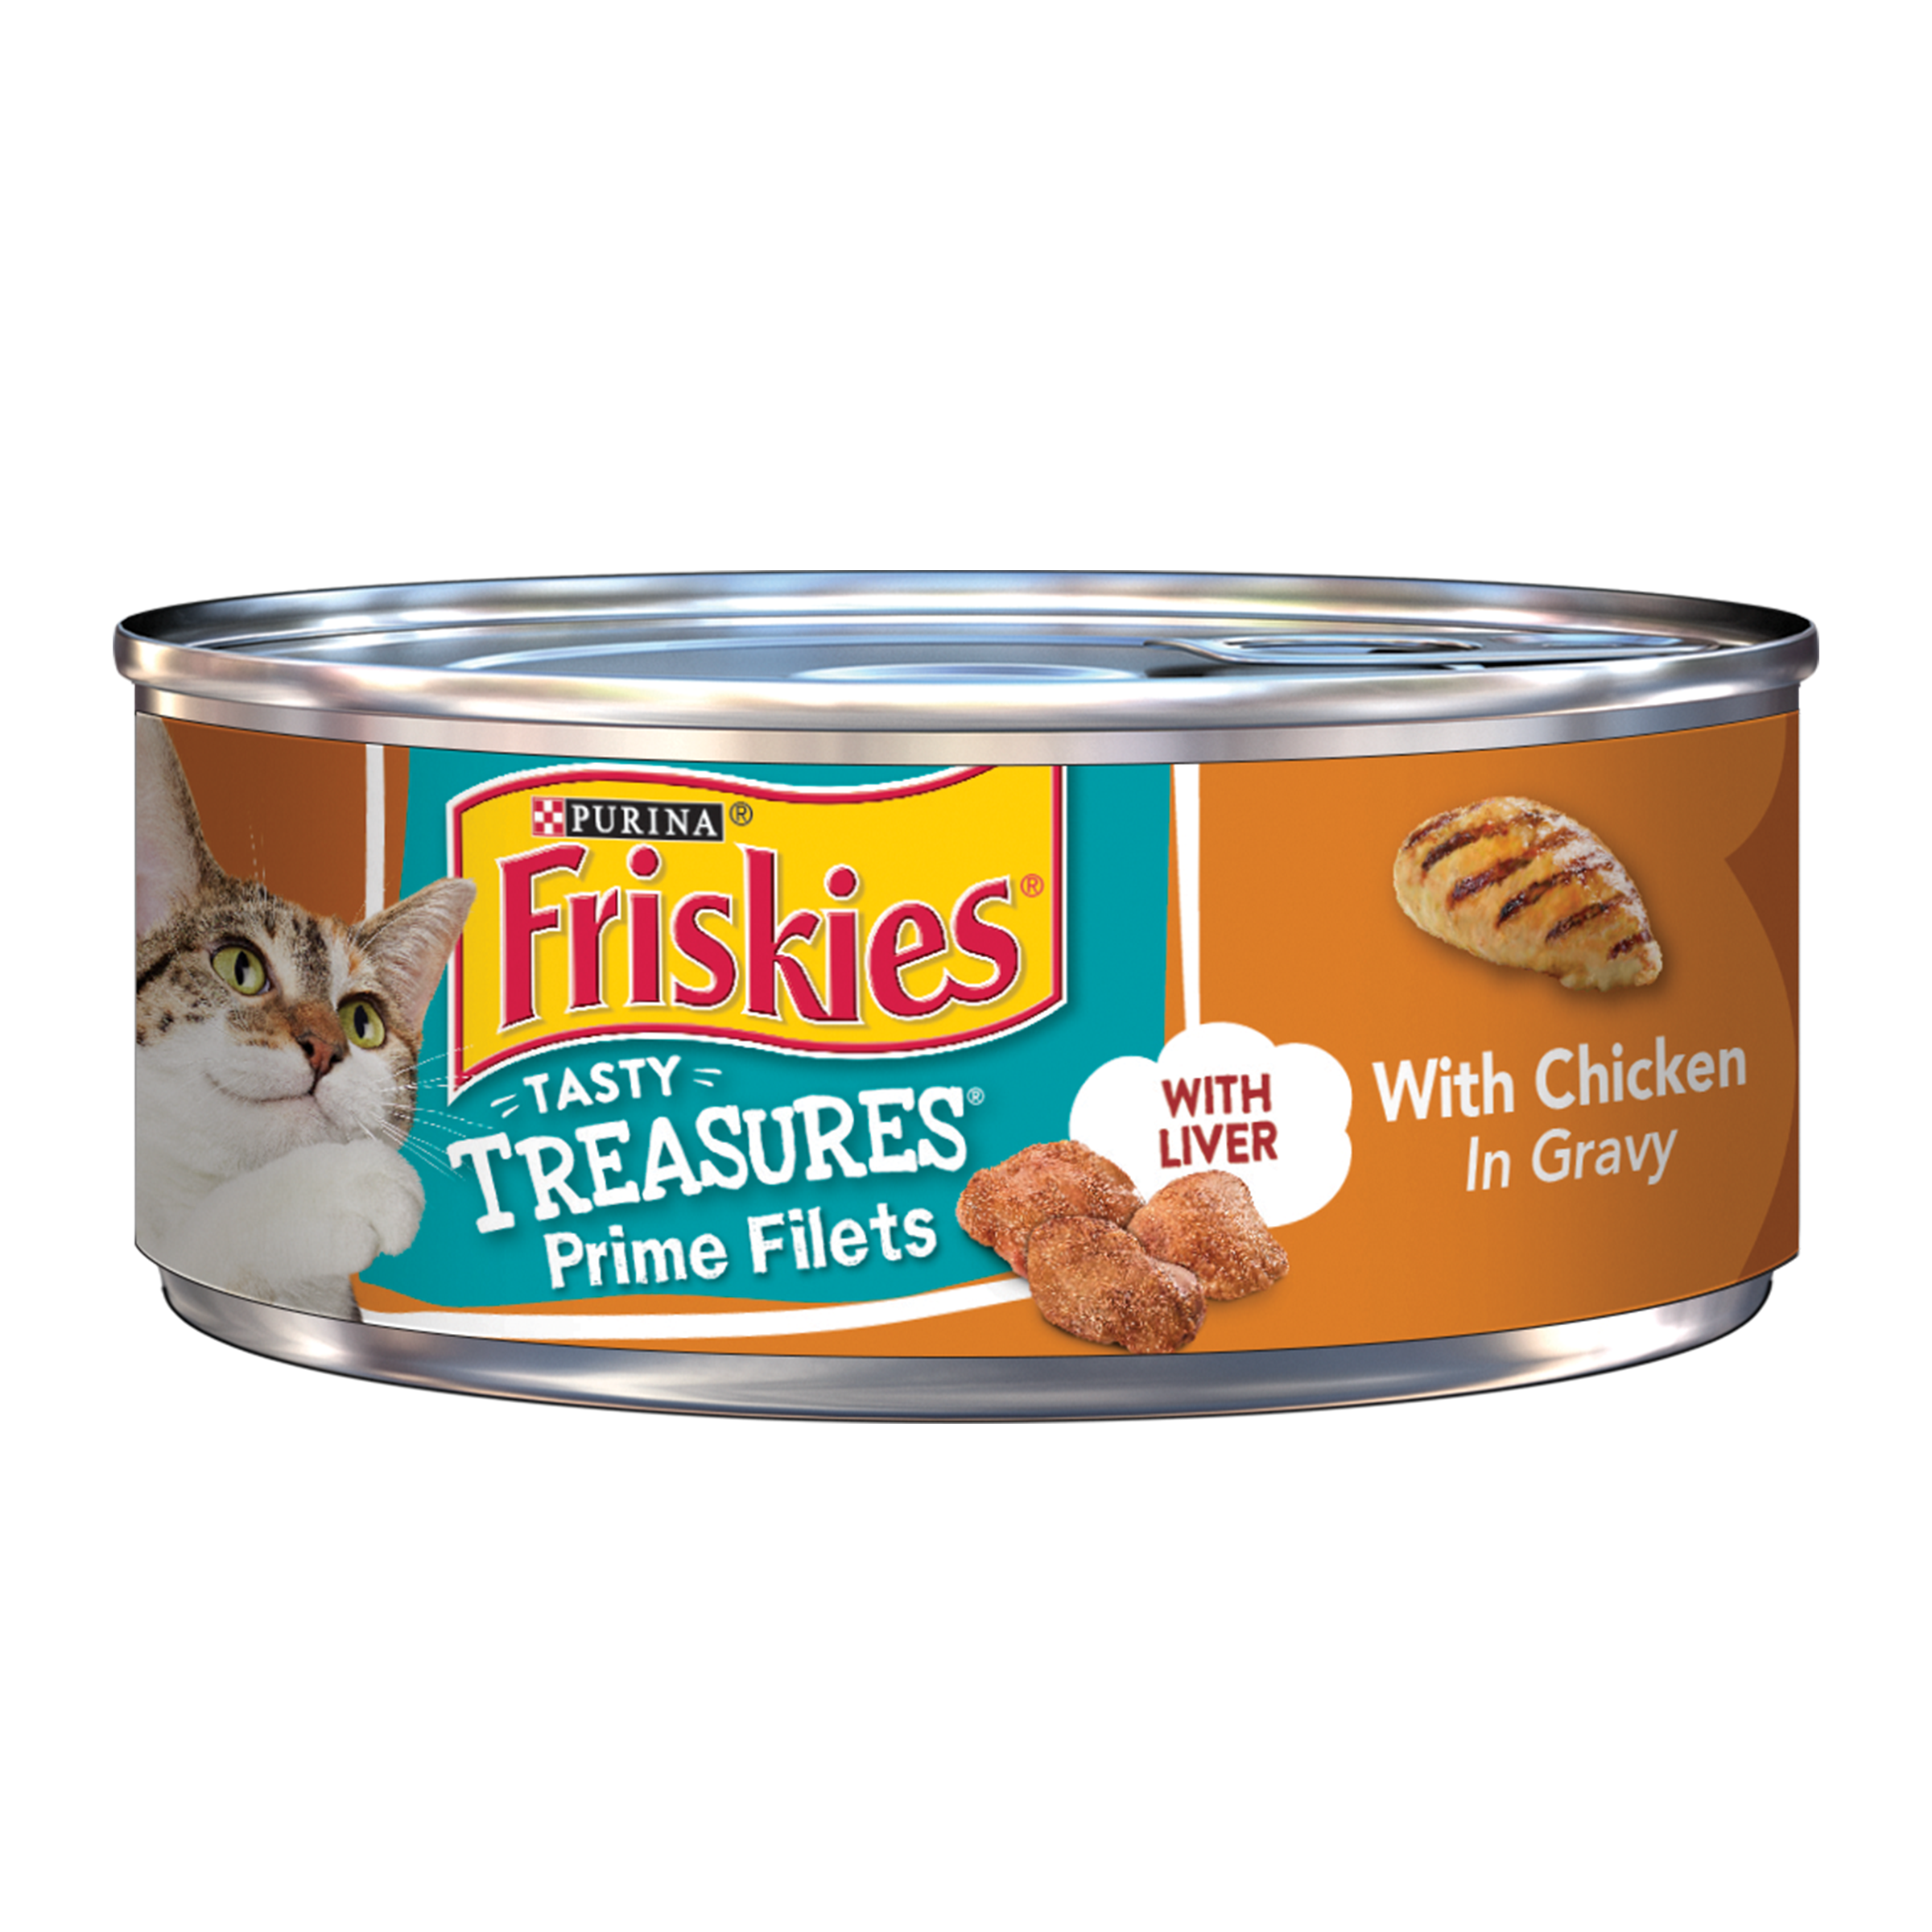 Friskies Tasty Treasures Chicken With Liver in Gravy Wet Cat Food